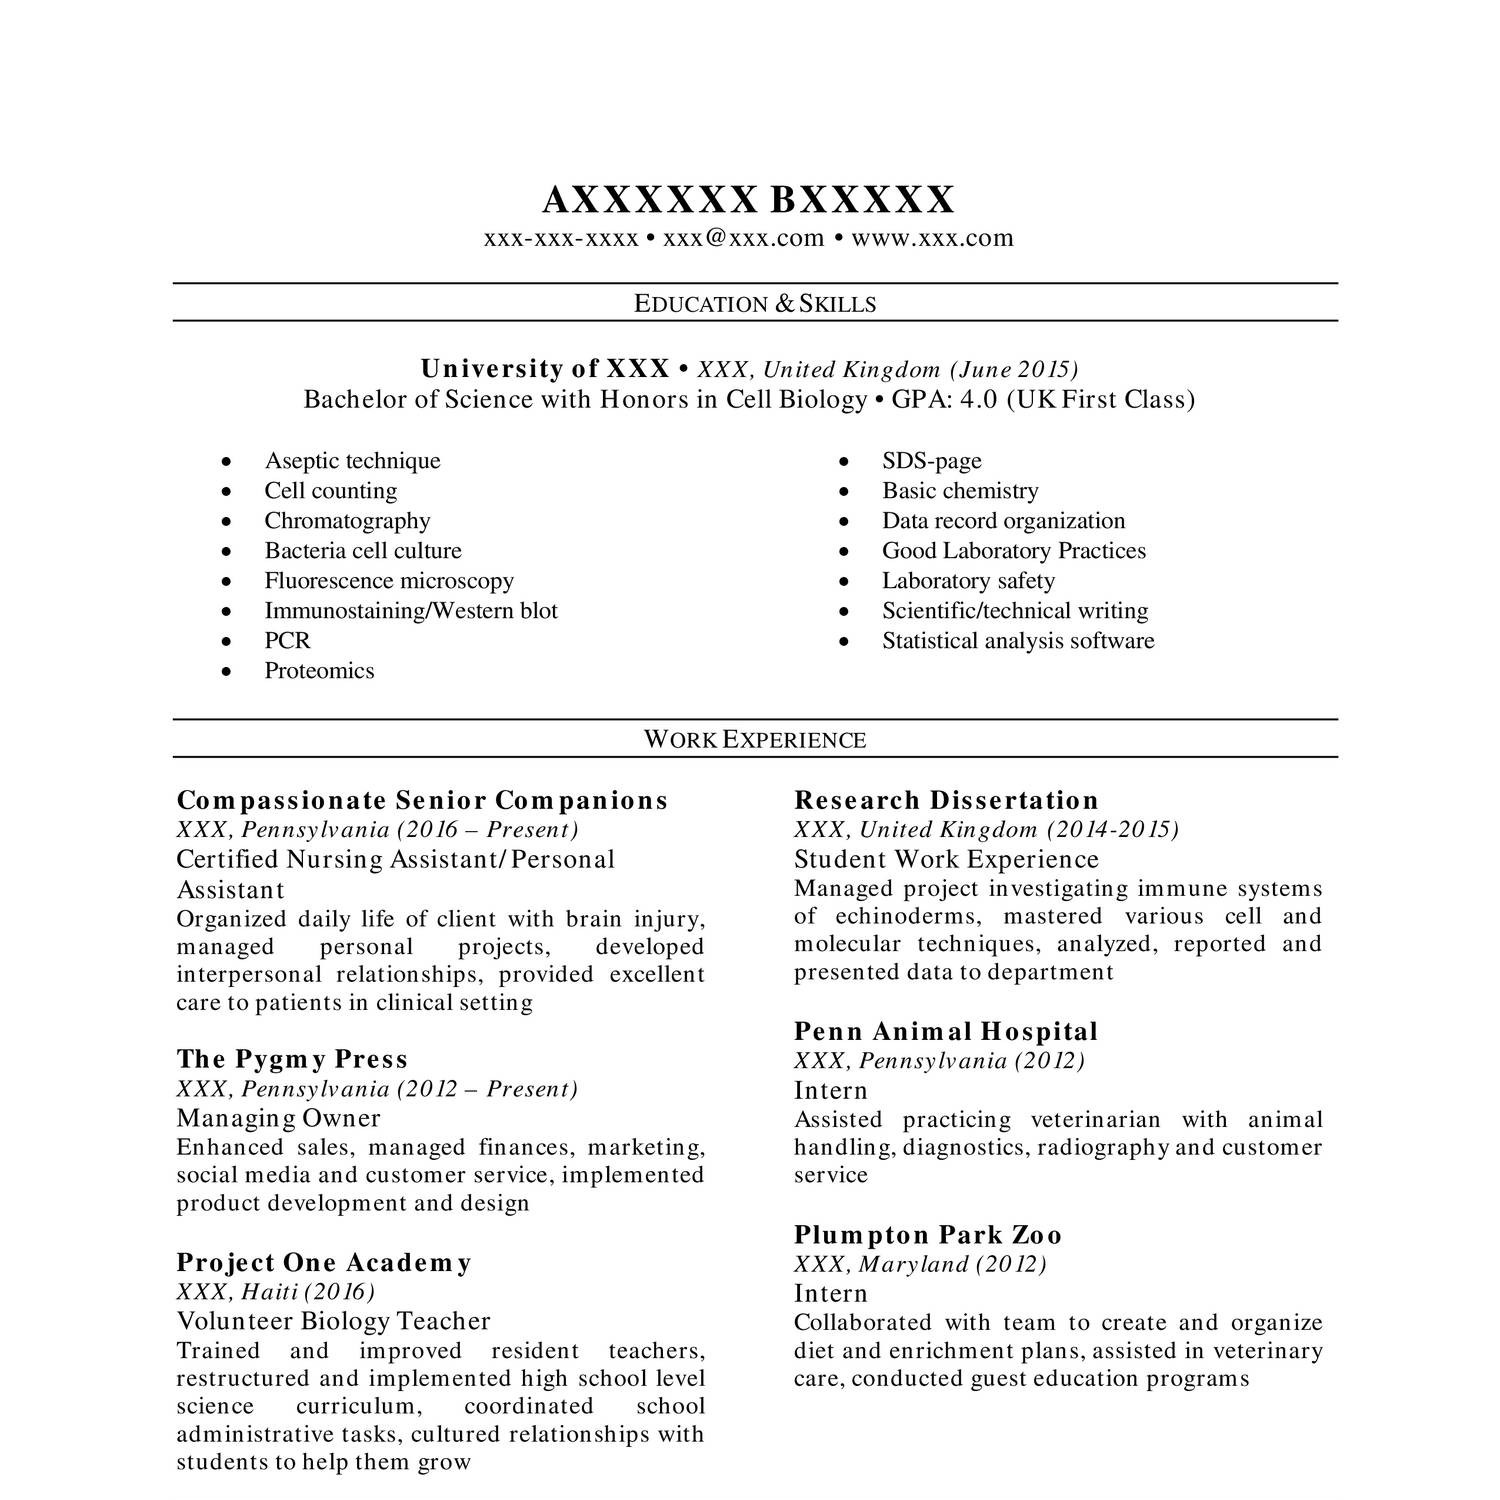 Resume File Format Word Word Resume Template Reddit  Virtrencom Resume Experts Word with Cover Letter For Resume Samples Excel Resume Font Size Reddit Virtren Cashier Resume Example Excel